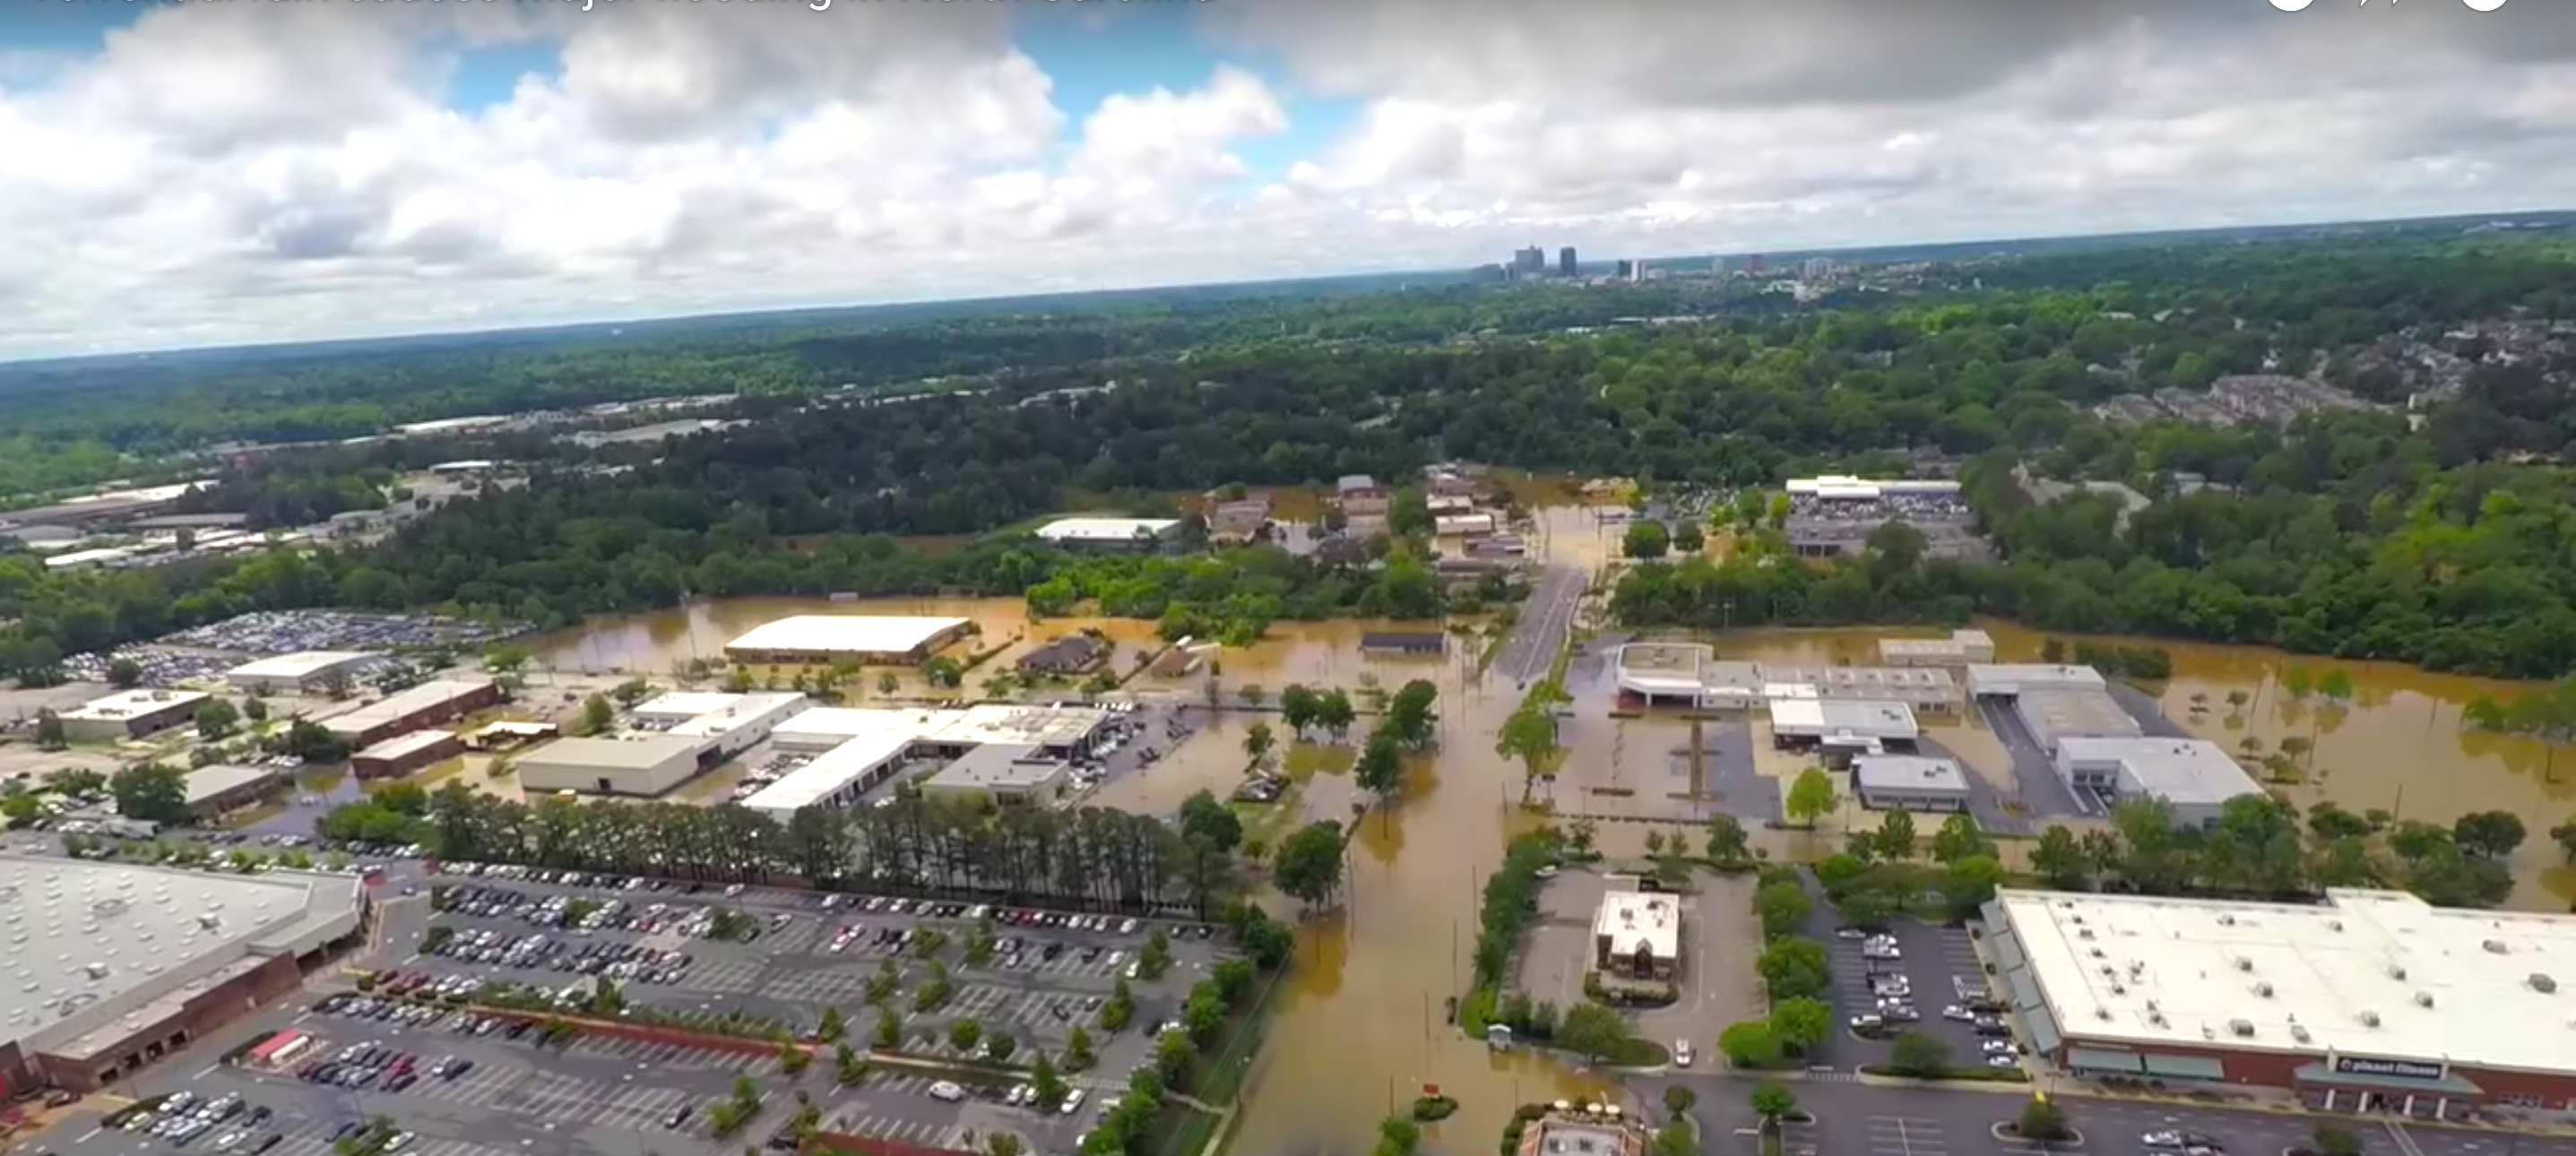 Parts Of North Carolina Are Underwater As Deadly Floods